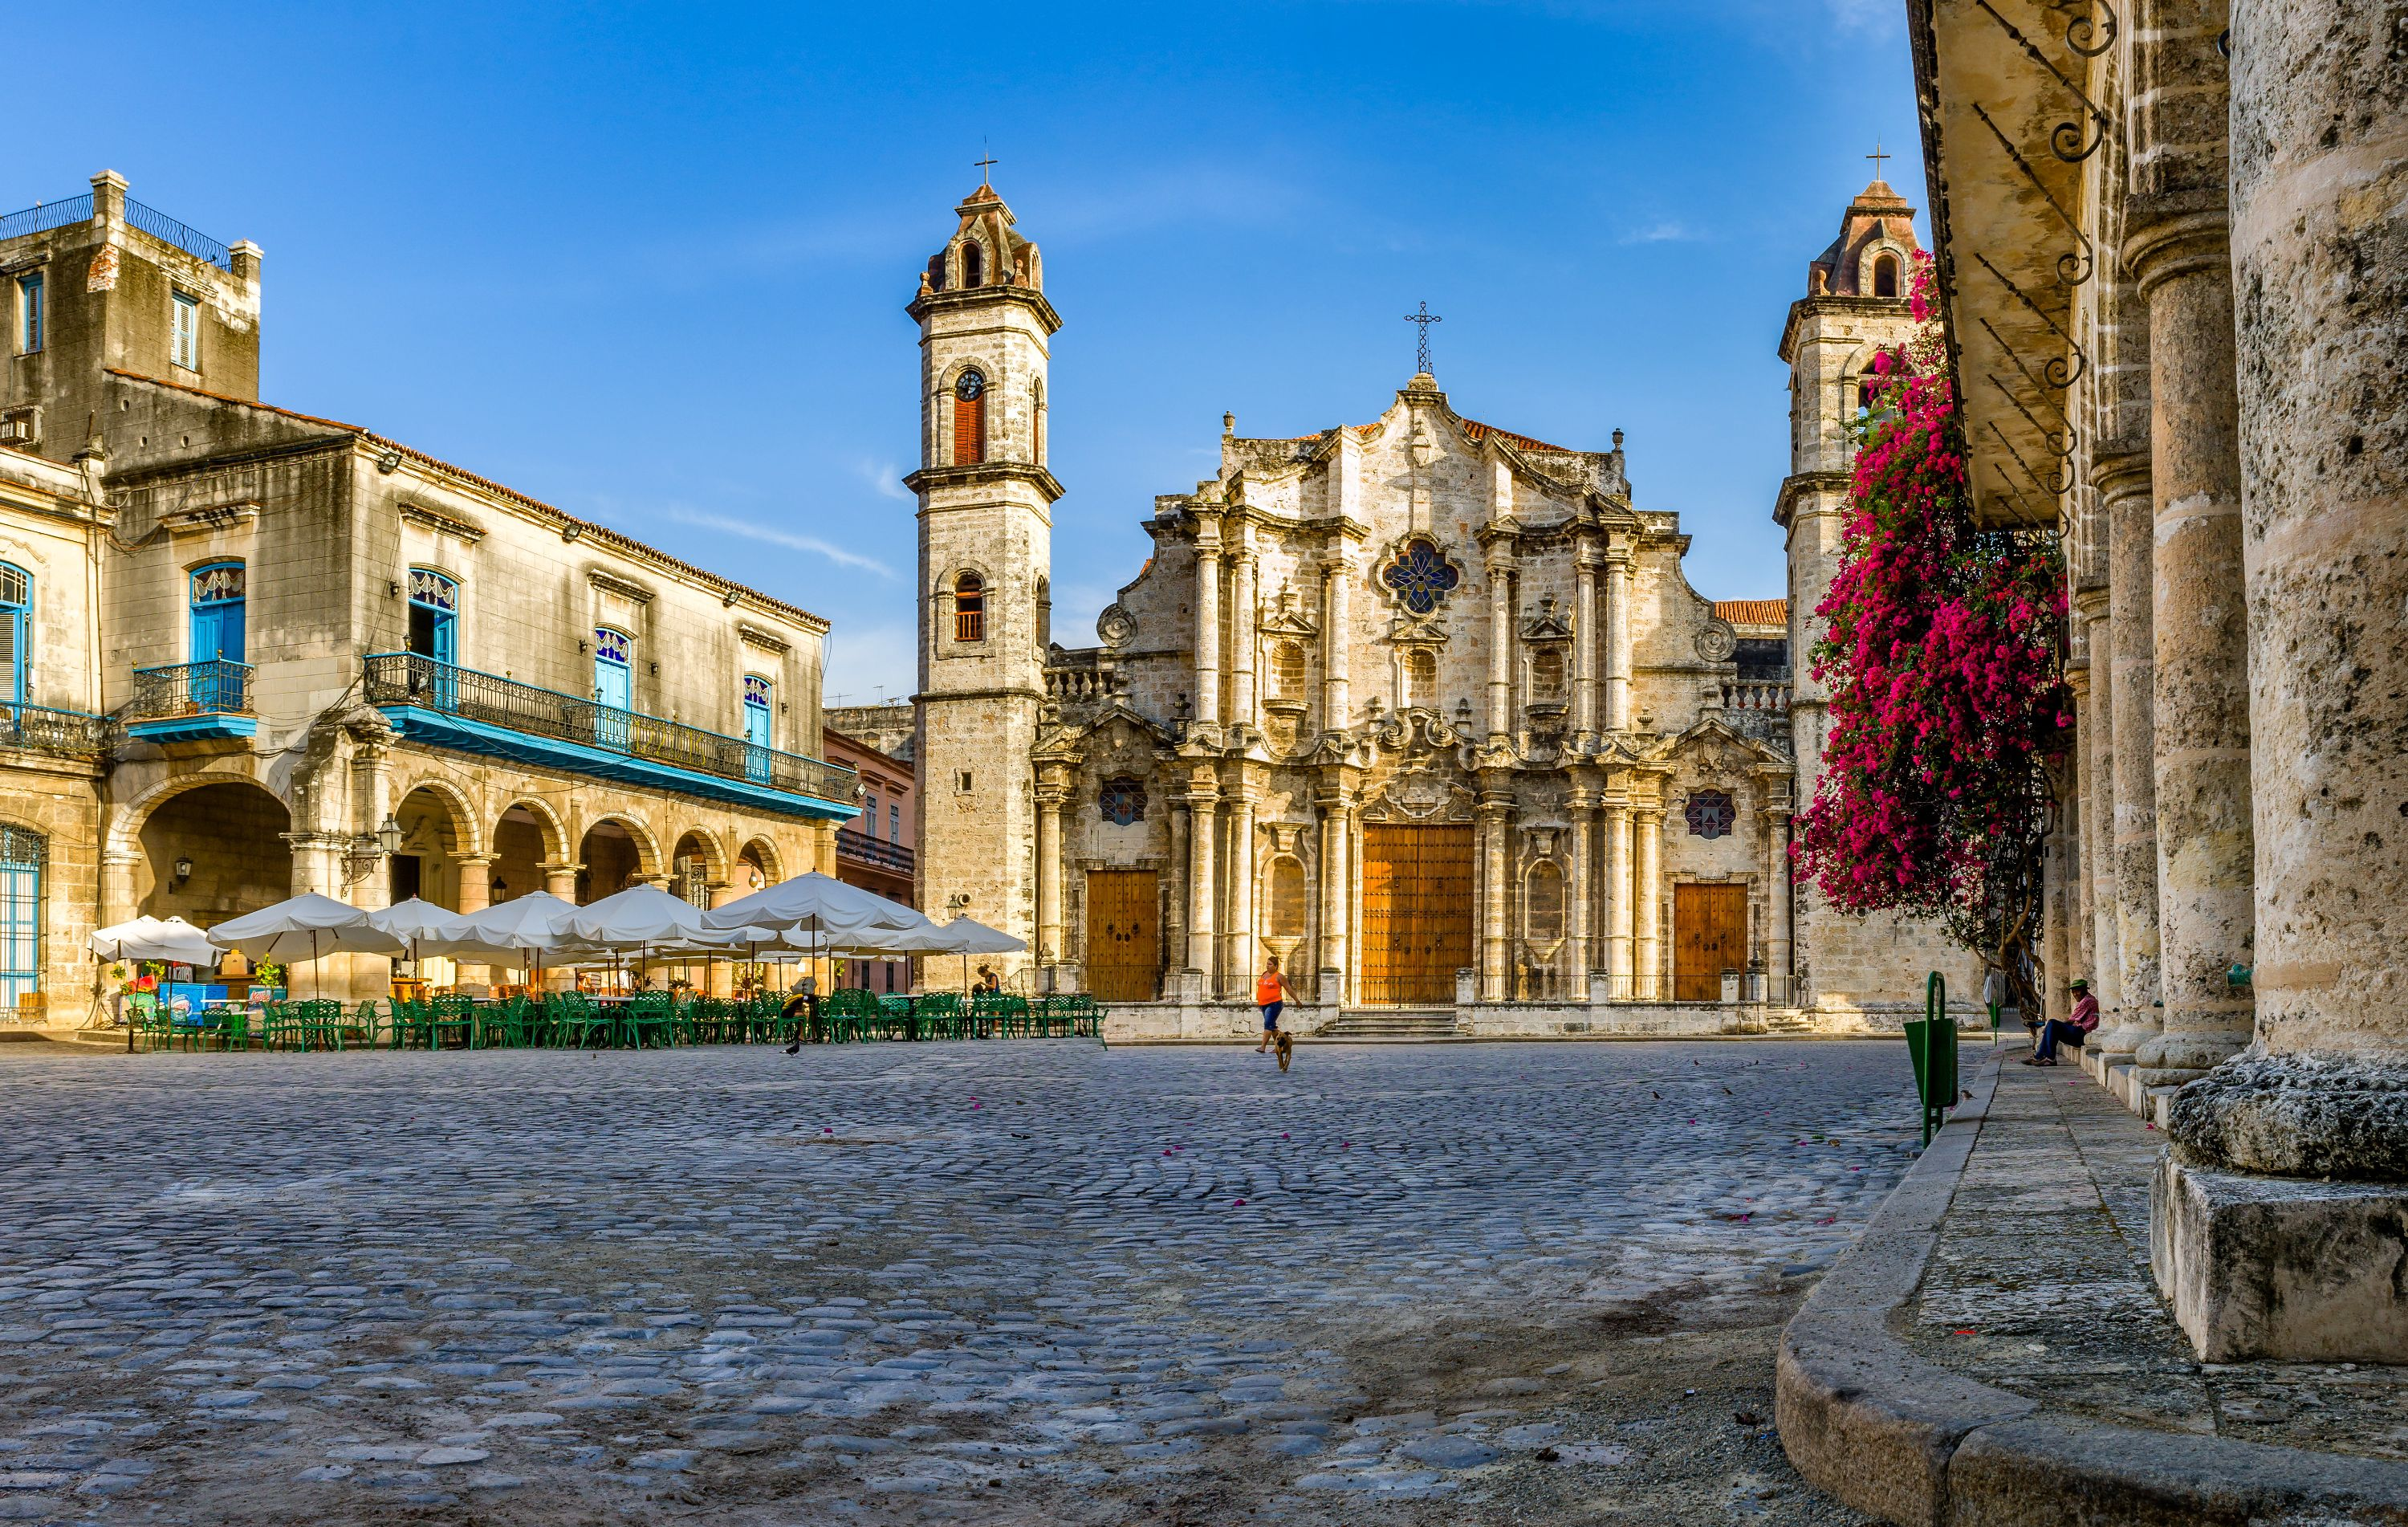 Guesthouses casa martha israel old town rentals havana city havana was founded by the spanish in 1519 in the natural harbor of the bay of havana it became a stopping point for the treasure laden spanish galleons on stopboris Choice Image